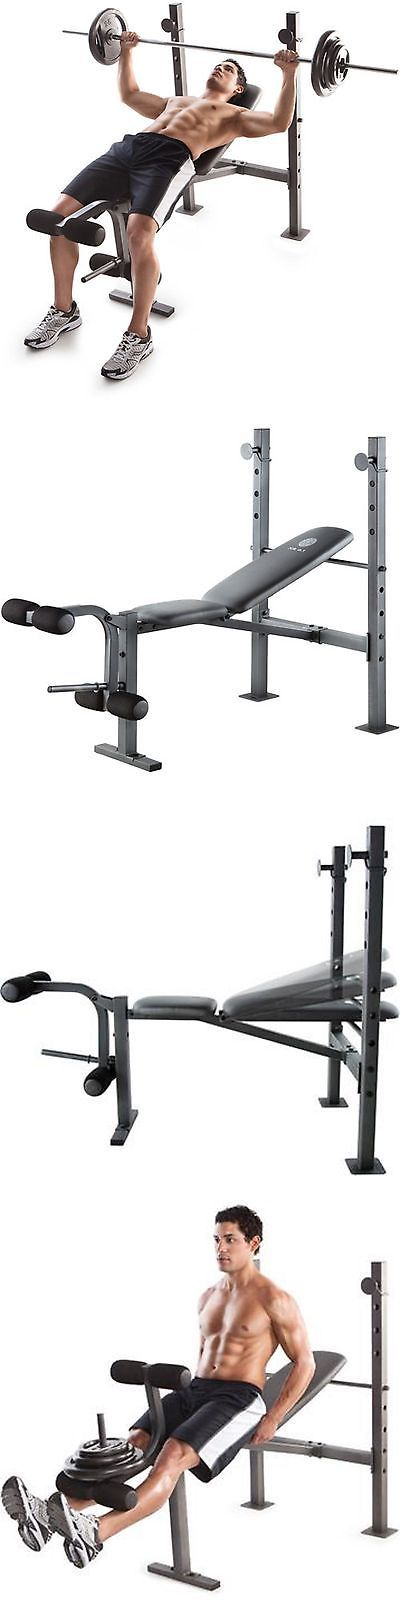 Benches 15281: Golds Gym Bench Press Weights Lifting Barbell Exercise Home Incline Exercise -> BUY IT NOW ONLY: $72.16 on eBay!